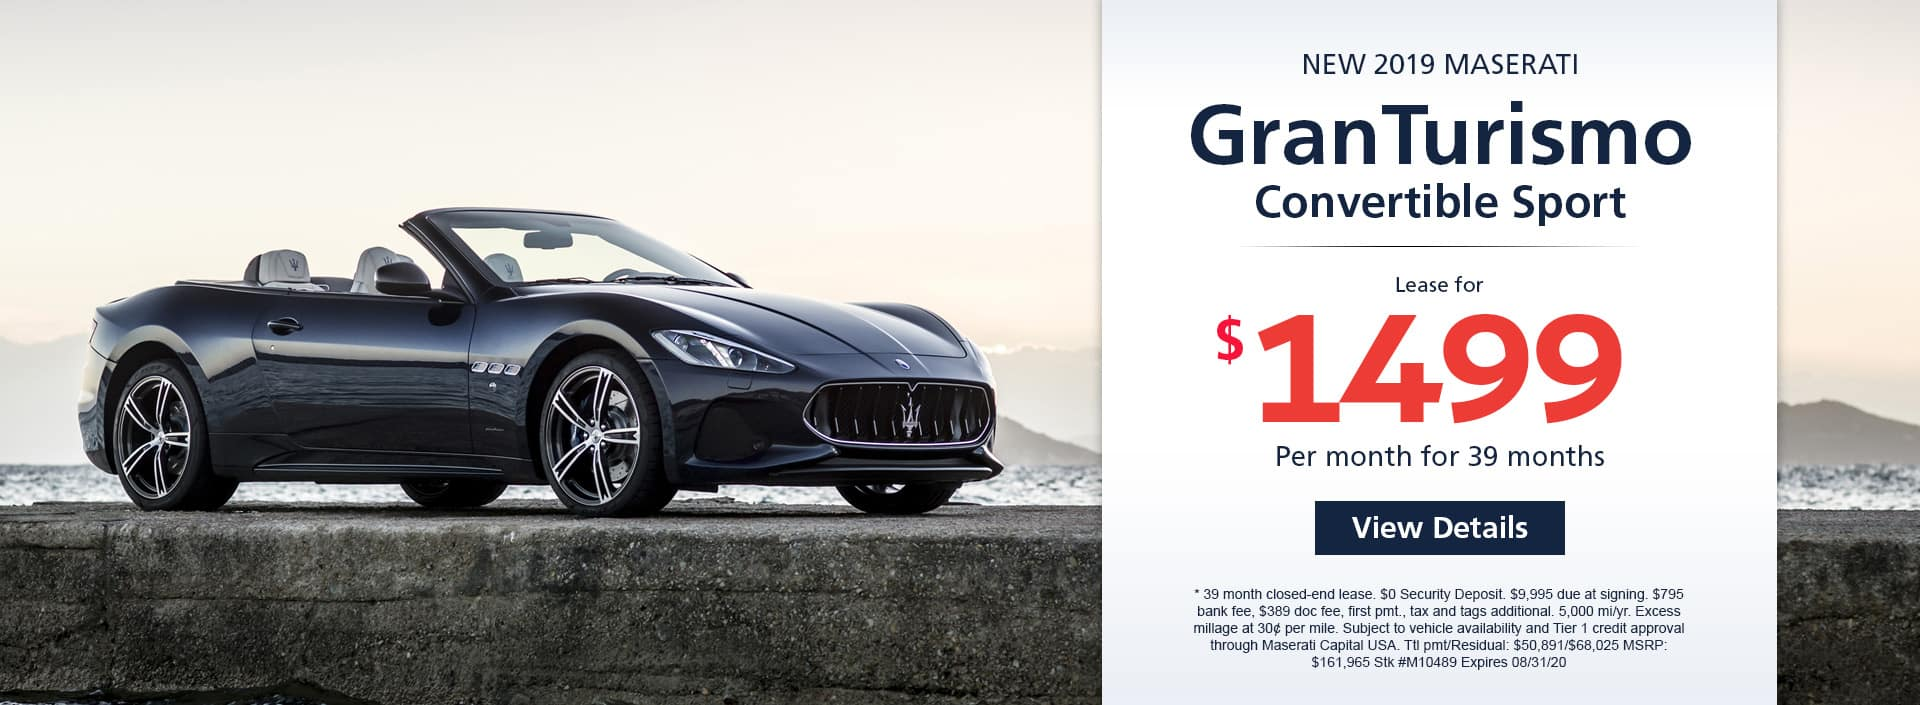 Lease a new 2019 Maserati GranTurismo Convertible Sport for $1,499 a month for 39 months. Or get special 0% APR financing for up to 60 months or 0% APR financing up to 84 months